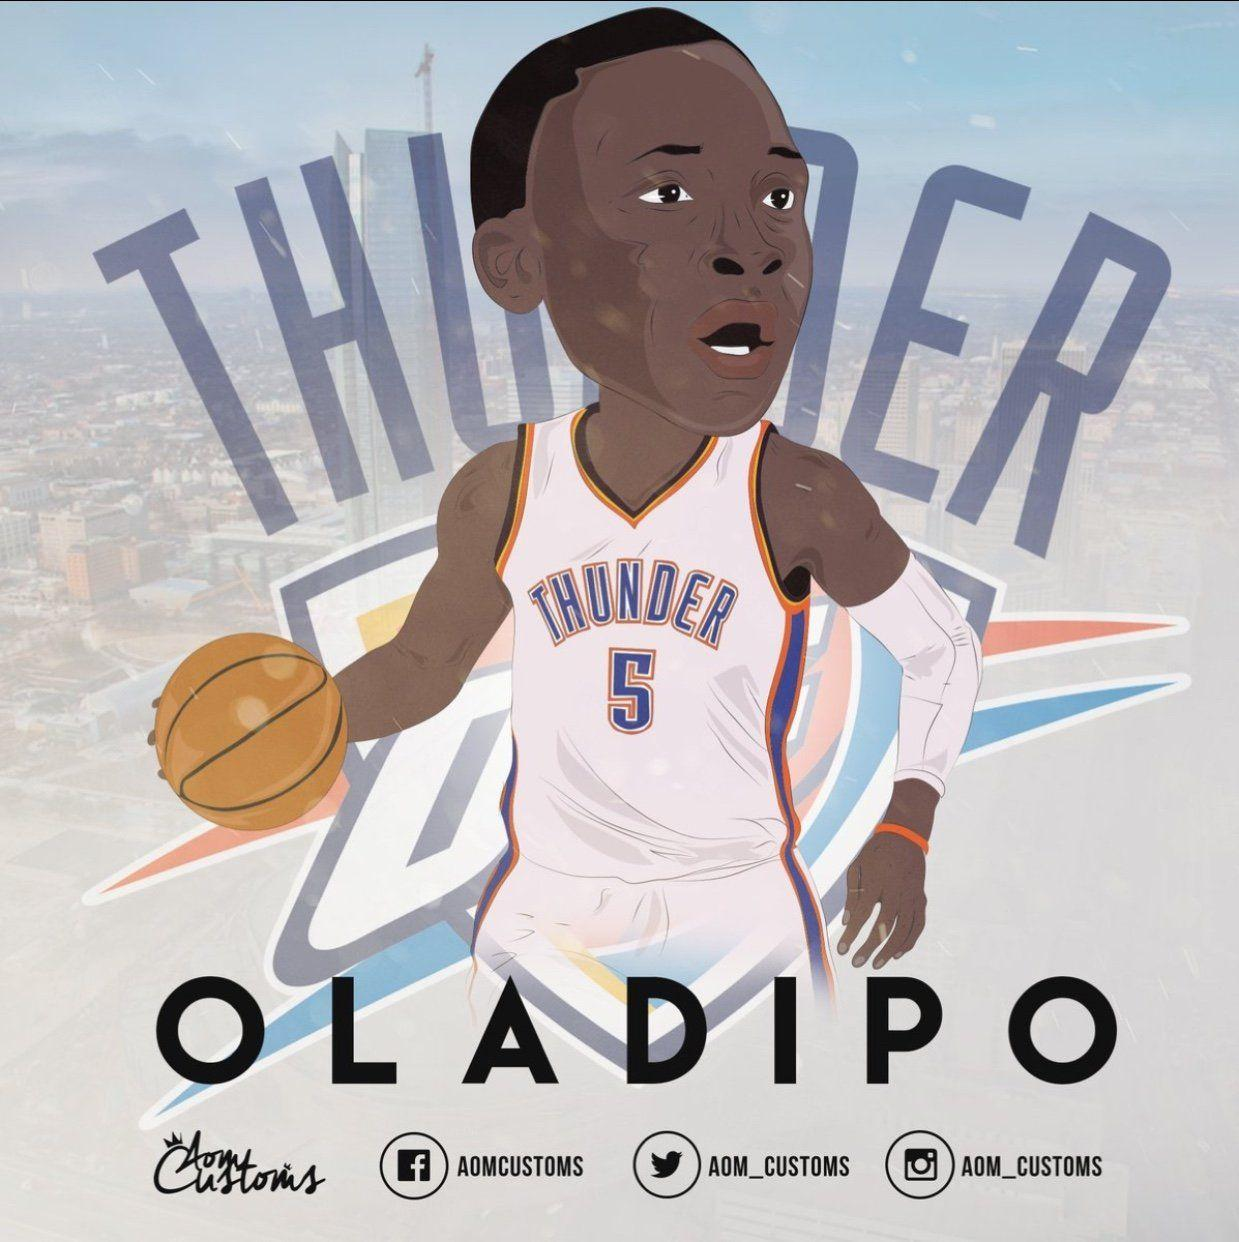 Sounds of Thunder: Losing is not an option for Victor Oladipo